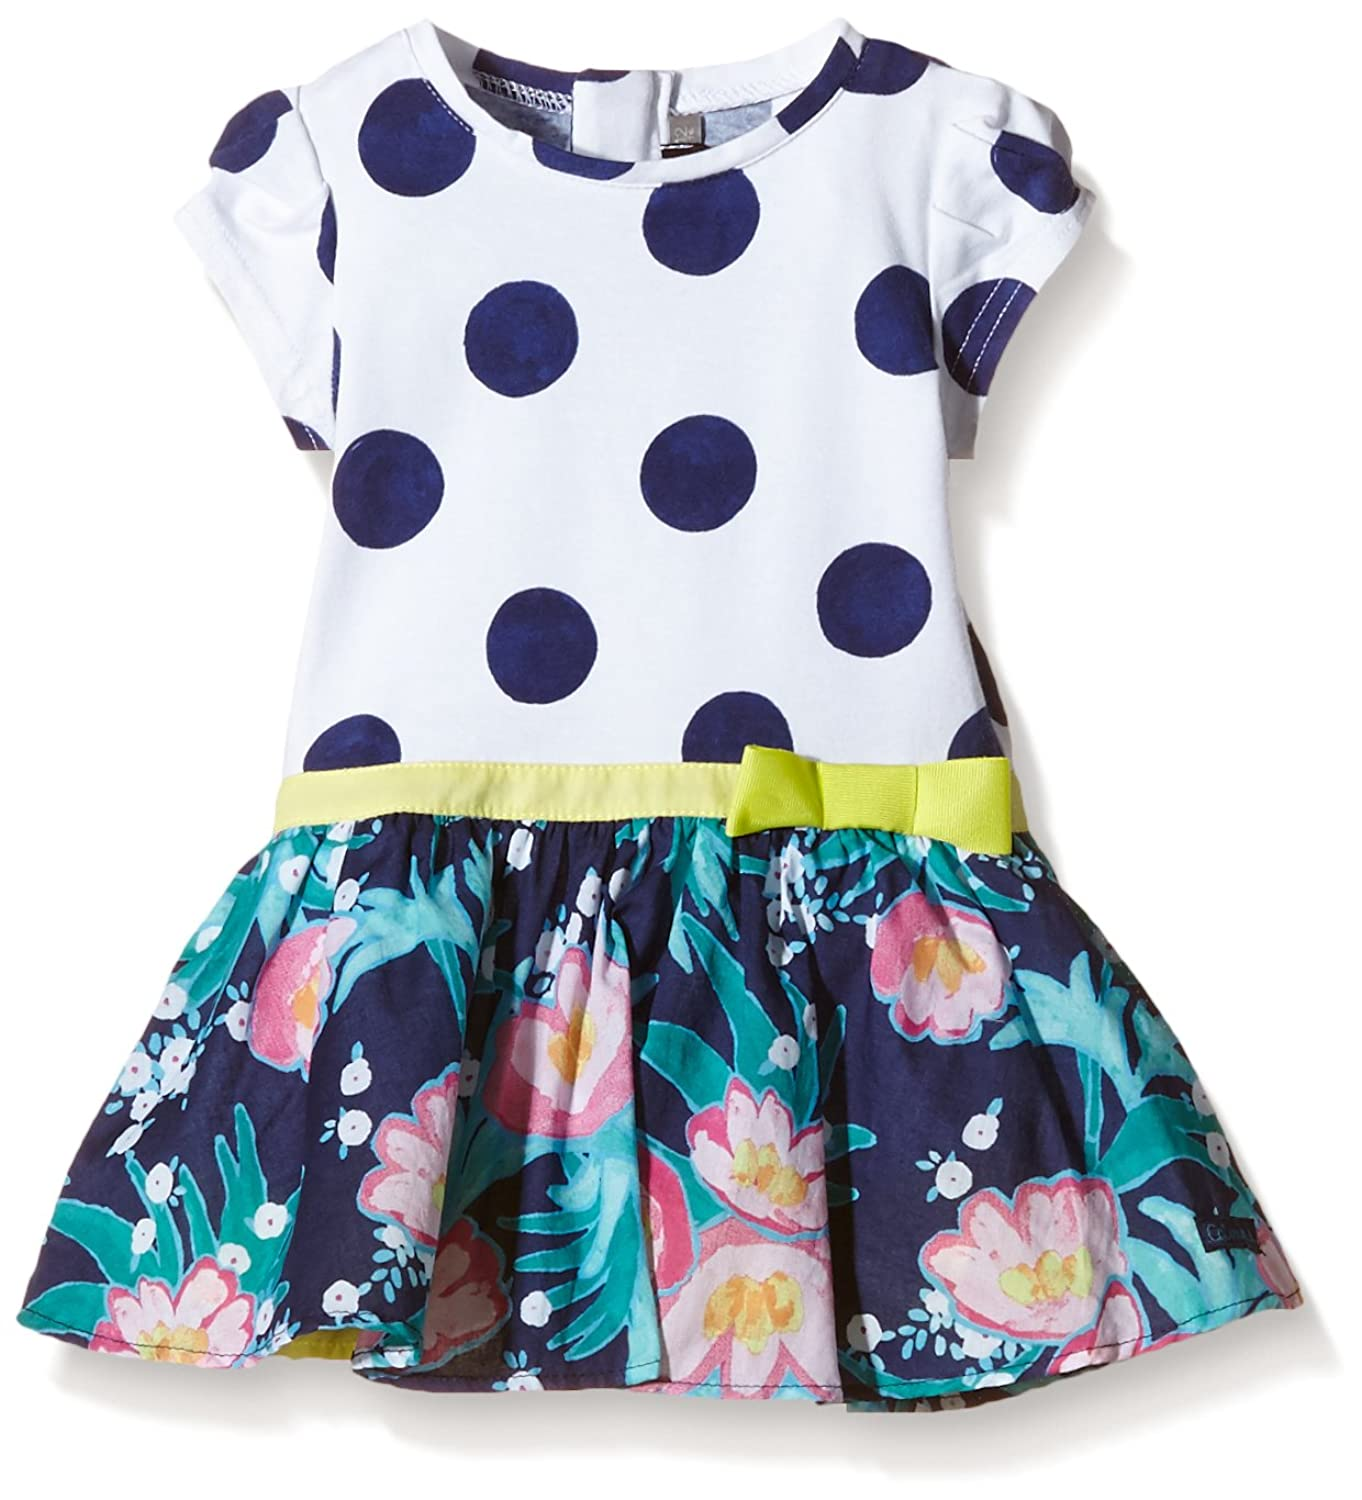 Catimini Baby Girls CHLFD SPIRIT GRAPHIC F L Polka Dot Dress white